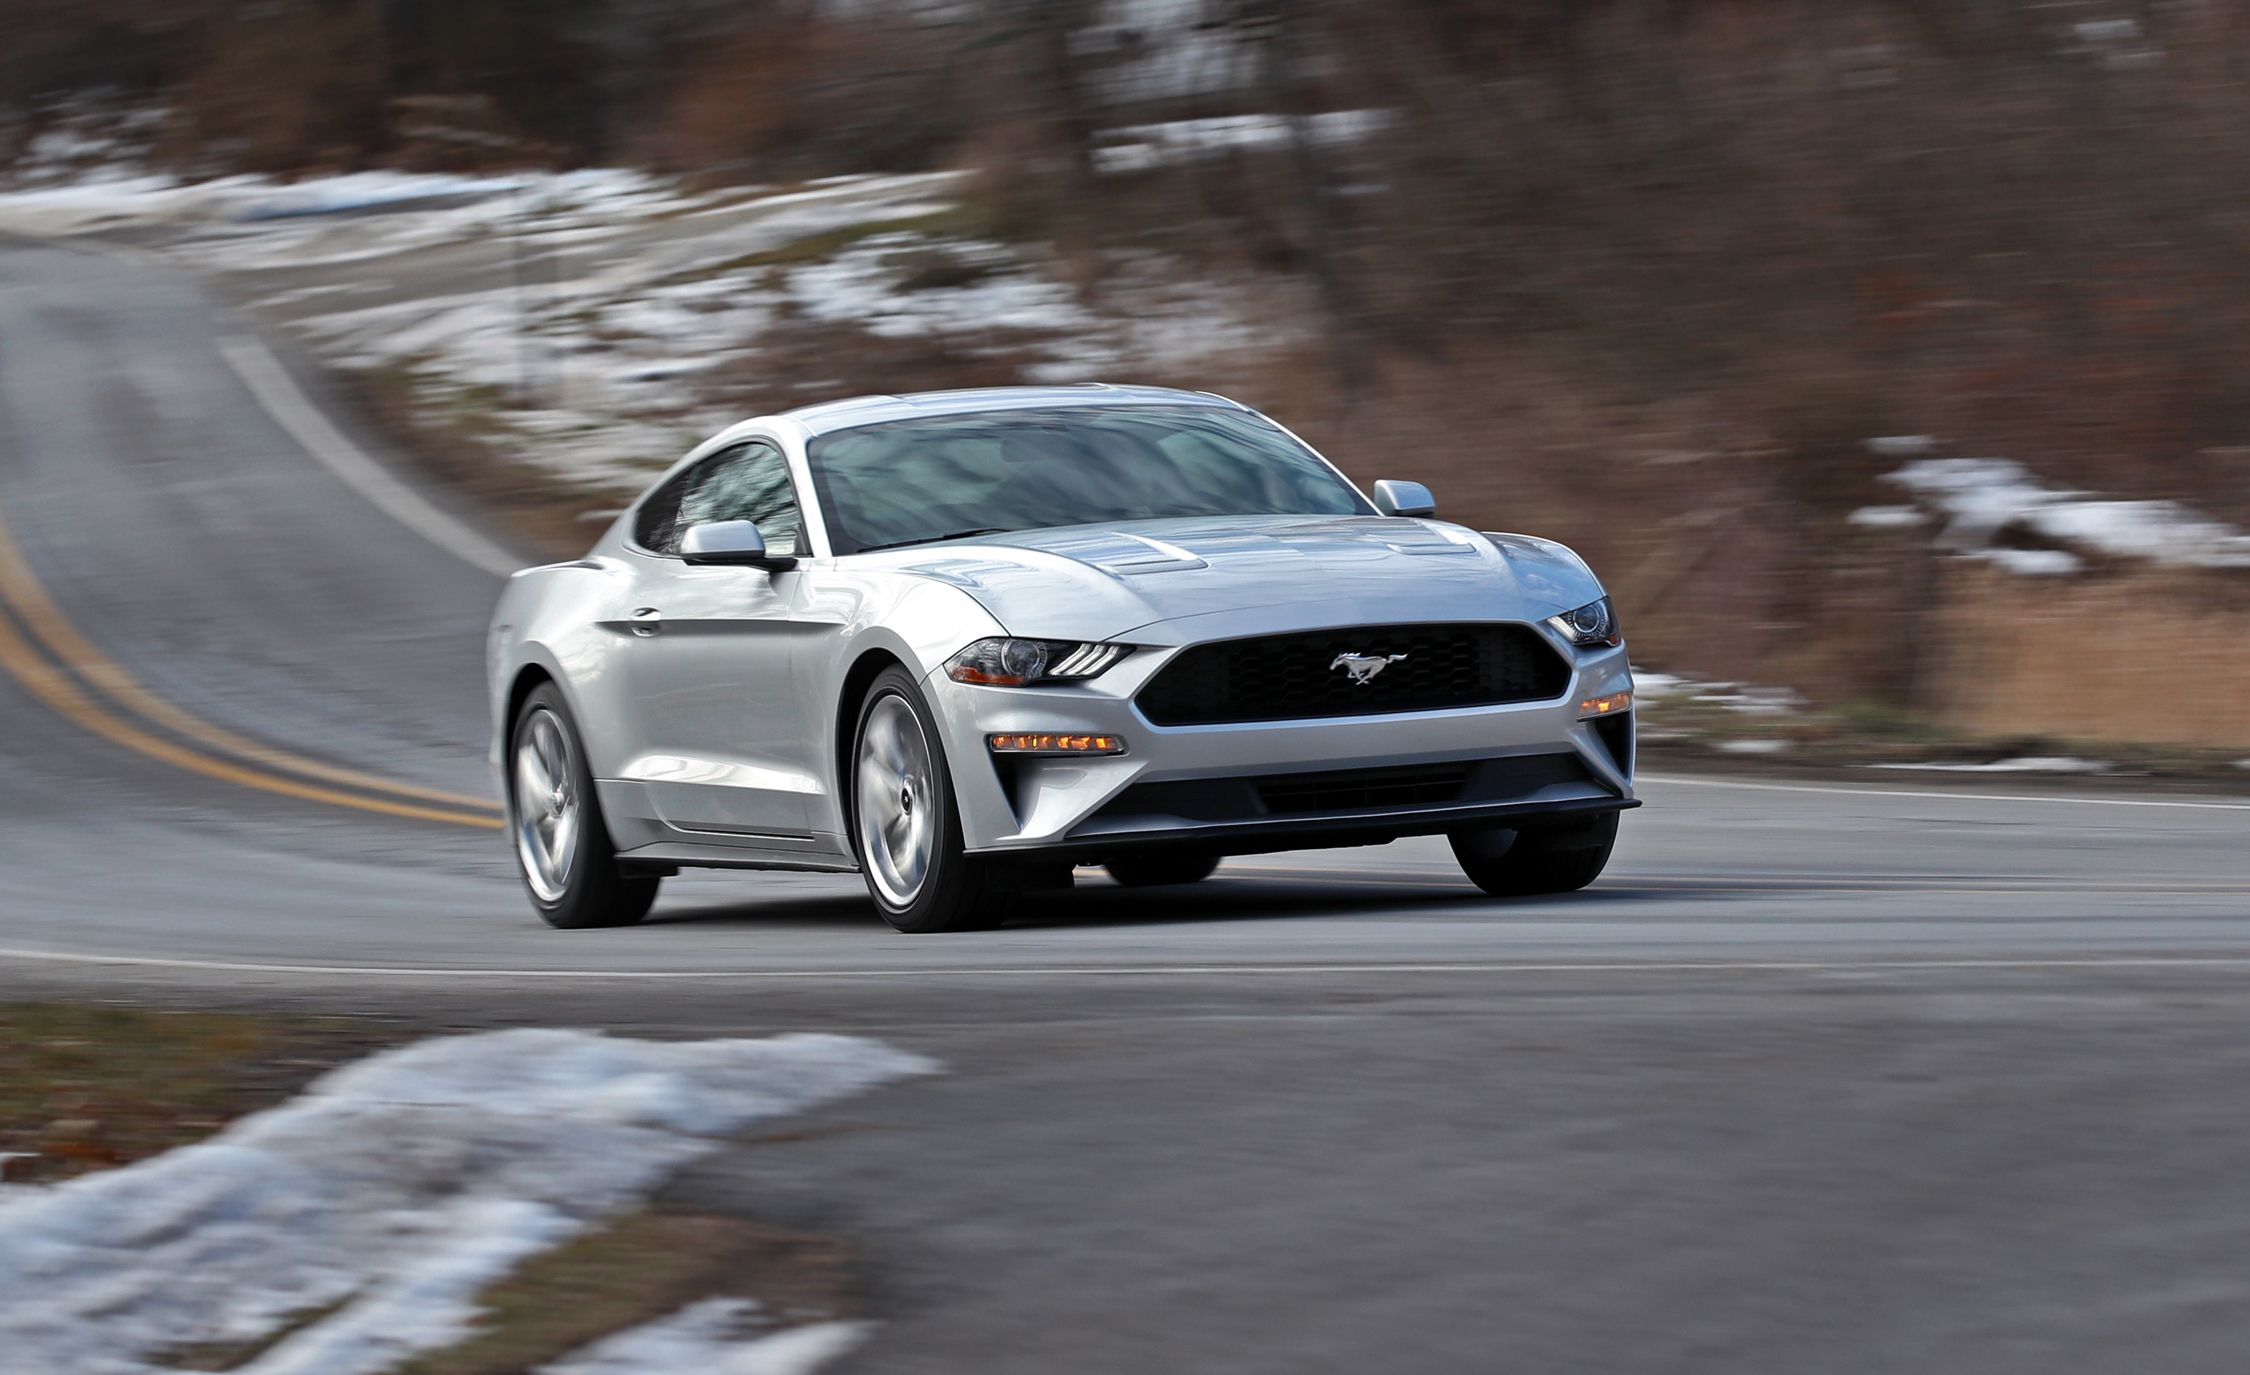 Ford Mustang Ecoboost >> 2018 Ford Mustang 2 3l Ecoboost Manual Test Does More Torque Help